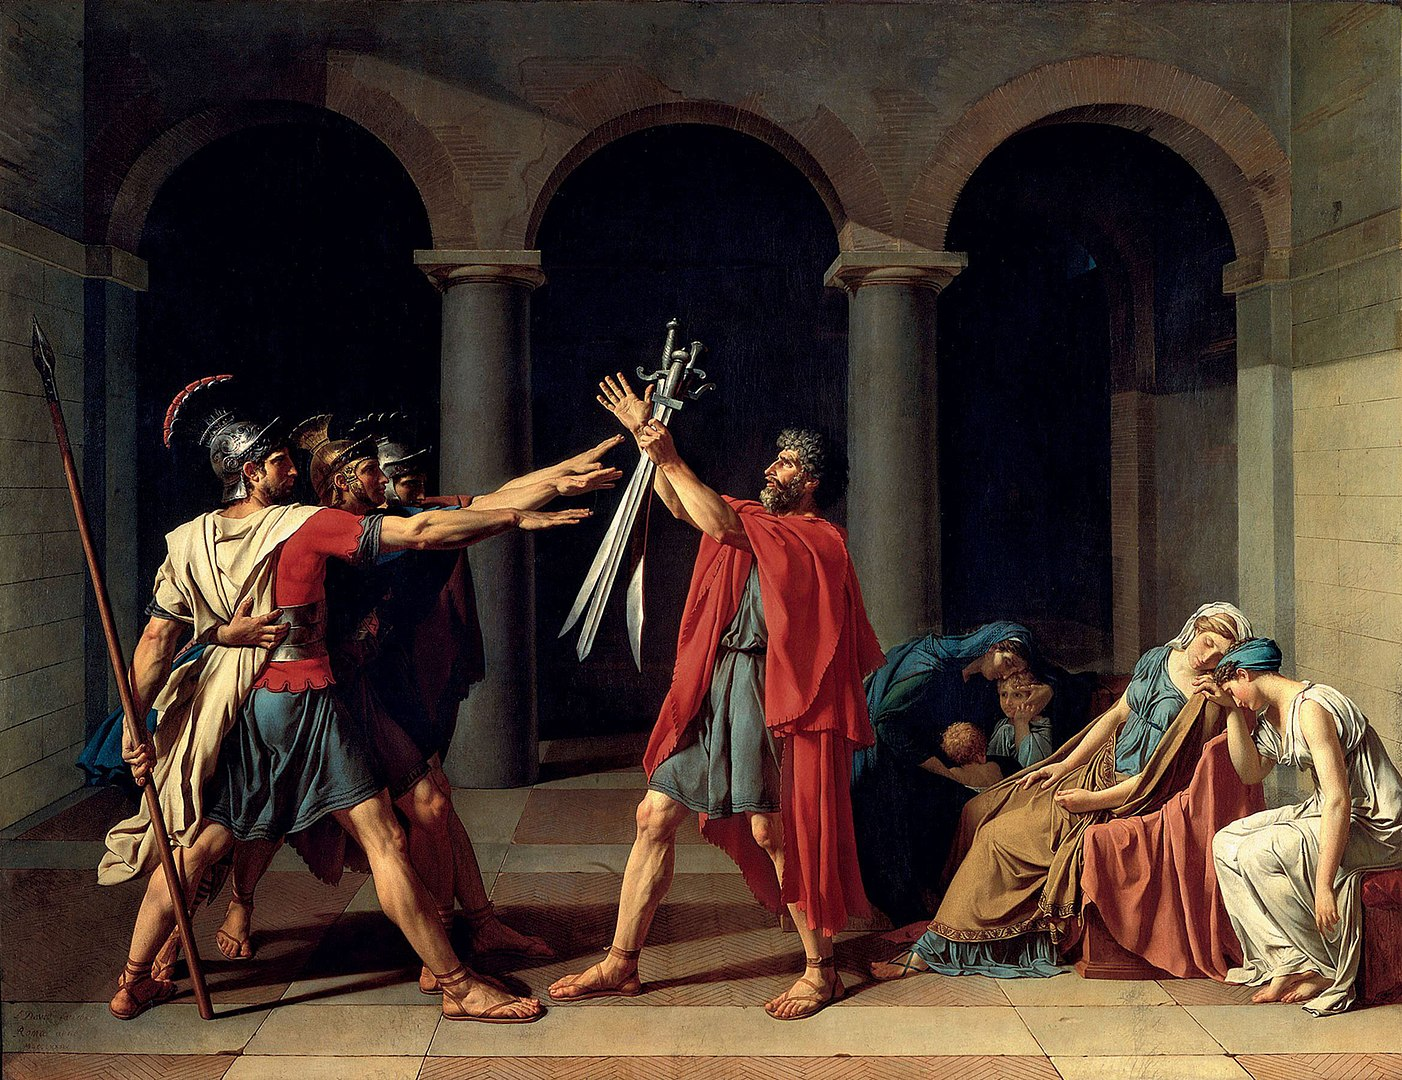 By Jacques-Louis David - wartburg.edu, Public Domain, https://commons.wikimedia.org/w/index.php?curid=5510374